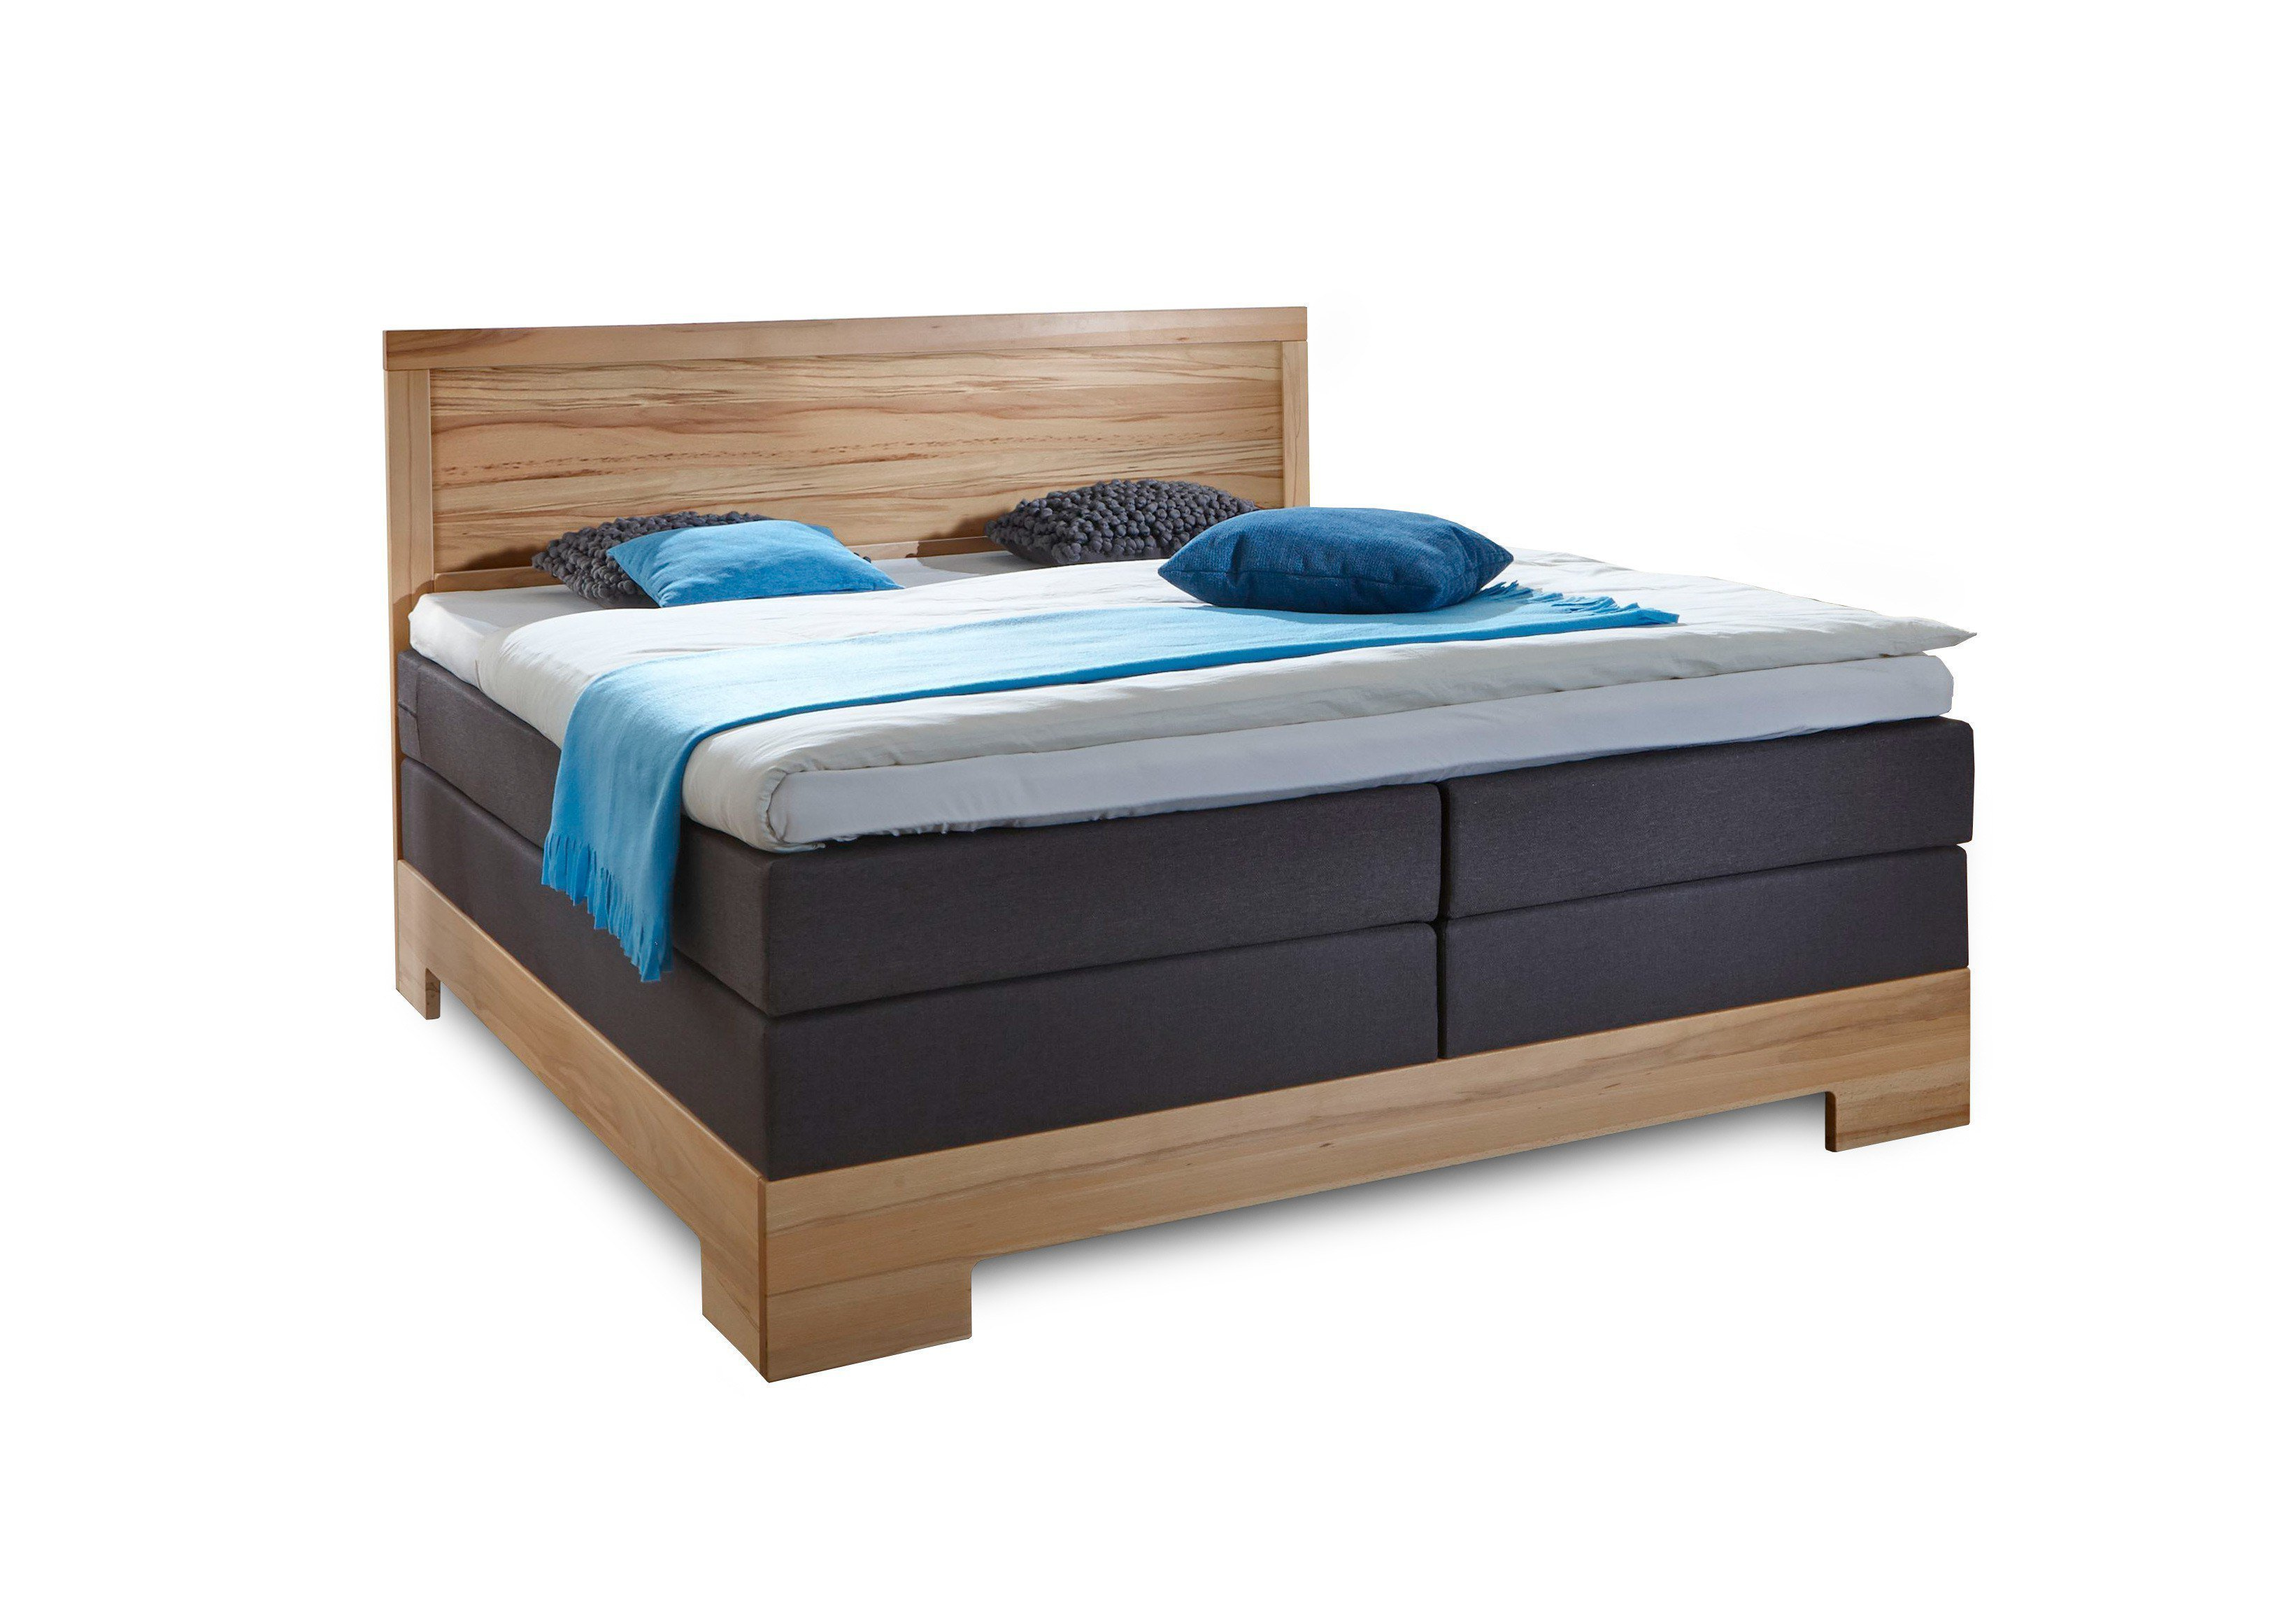 dico boxspringbett mit holzkopfteil in kernbuche ge lt m bel letz ihr online shop. Black Bedroom Furniture Sets. Home Design Ideas